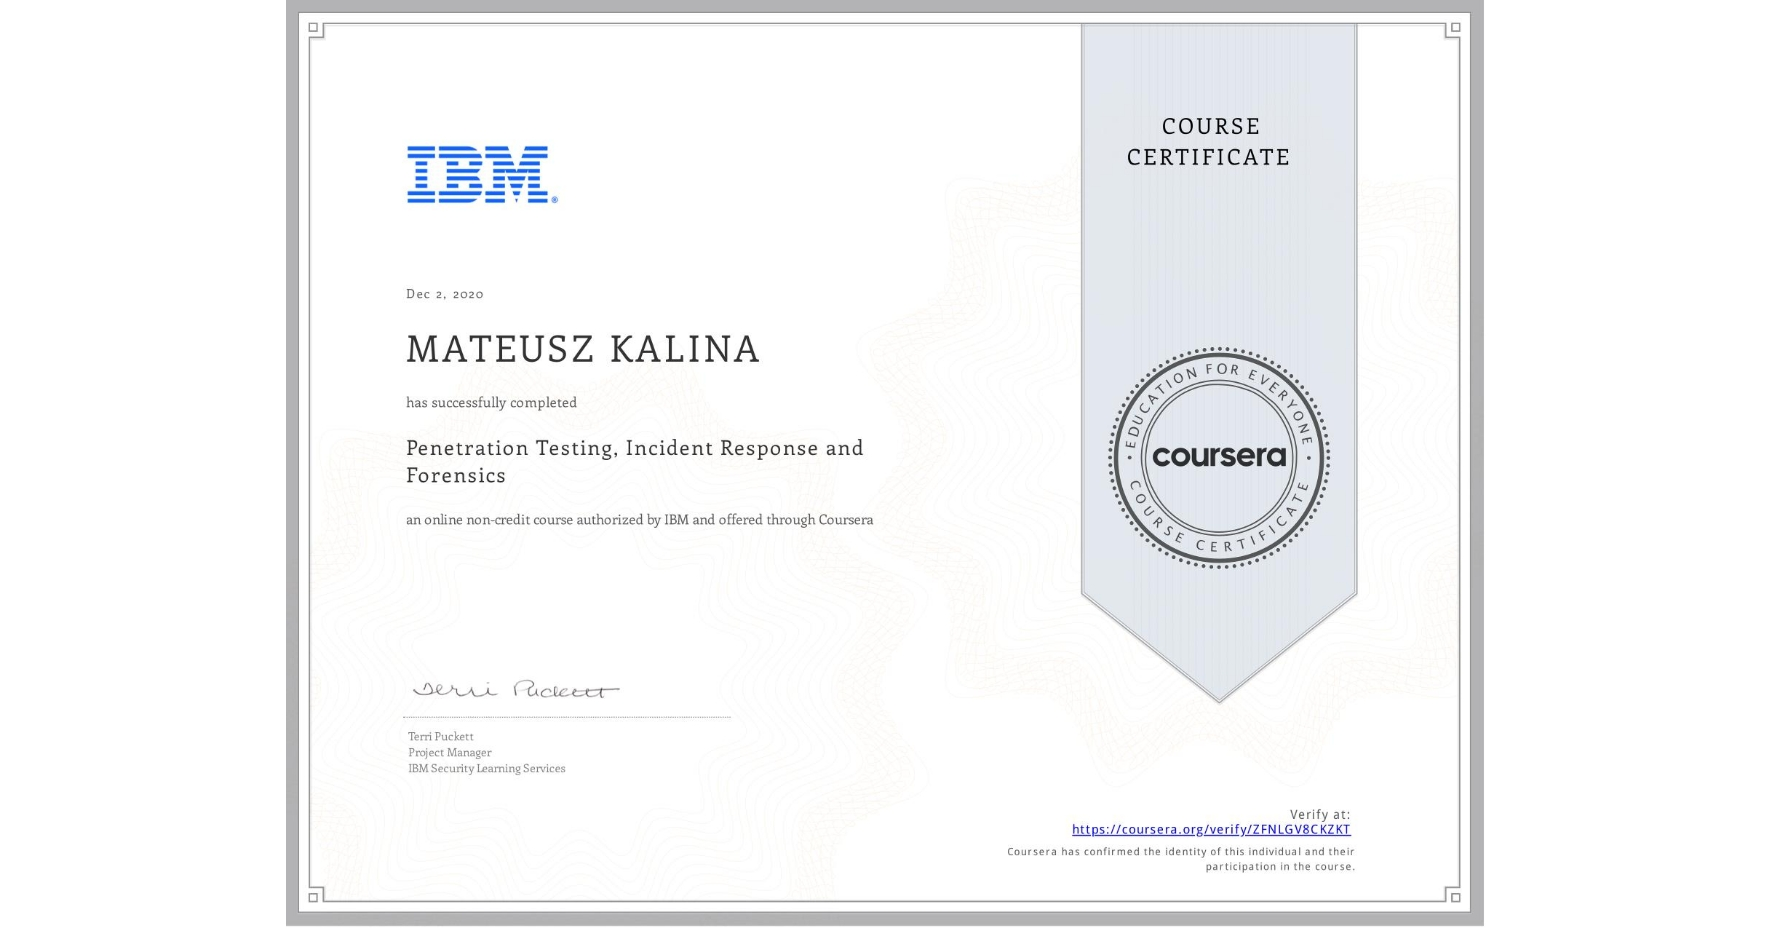 View certificate for MATEUSZ KALINA, Penetration Testing, Incident Response and Forensics, an online non-credit course authorized by IBM and offered through Coursera